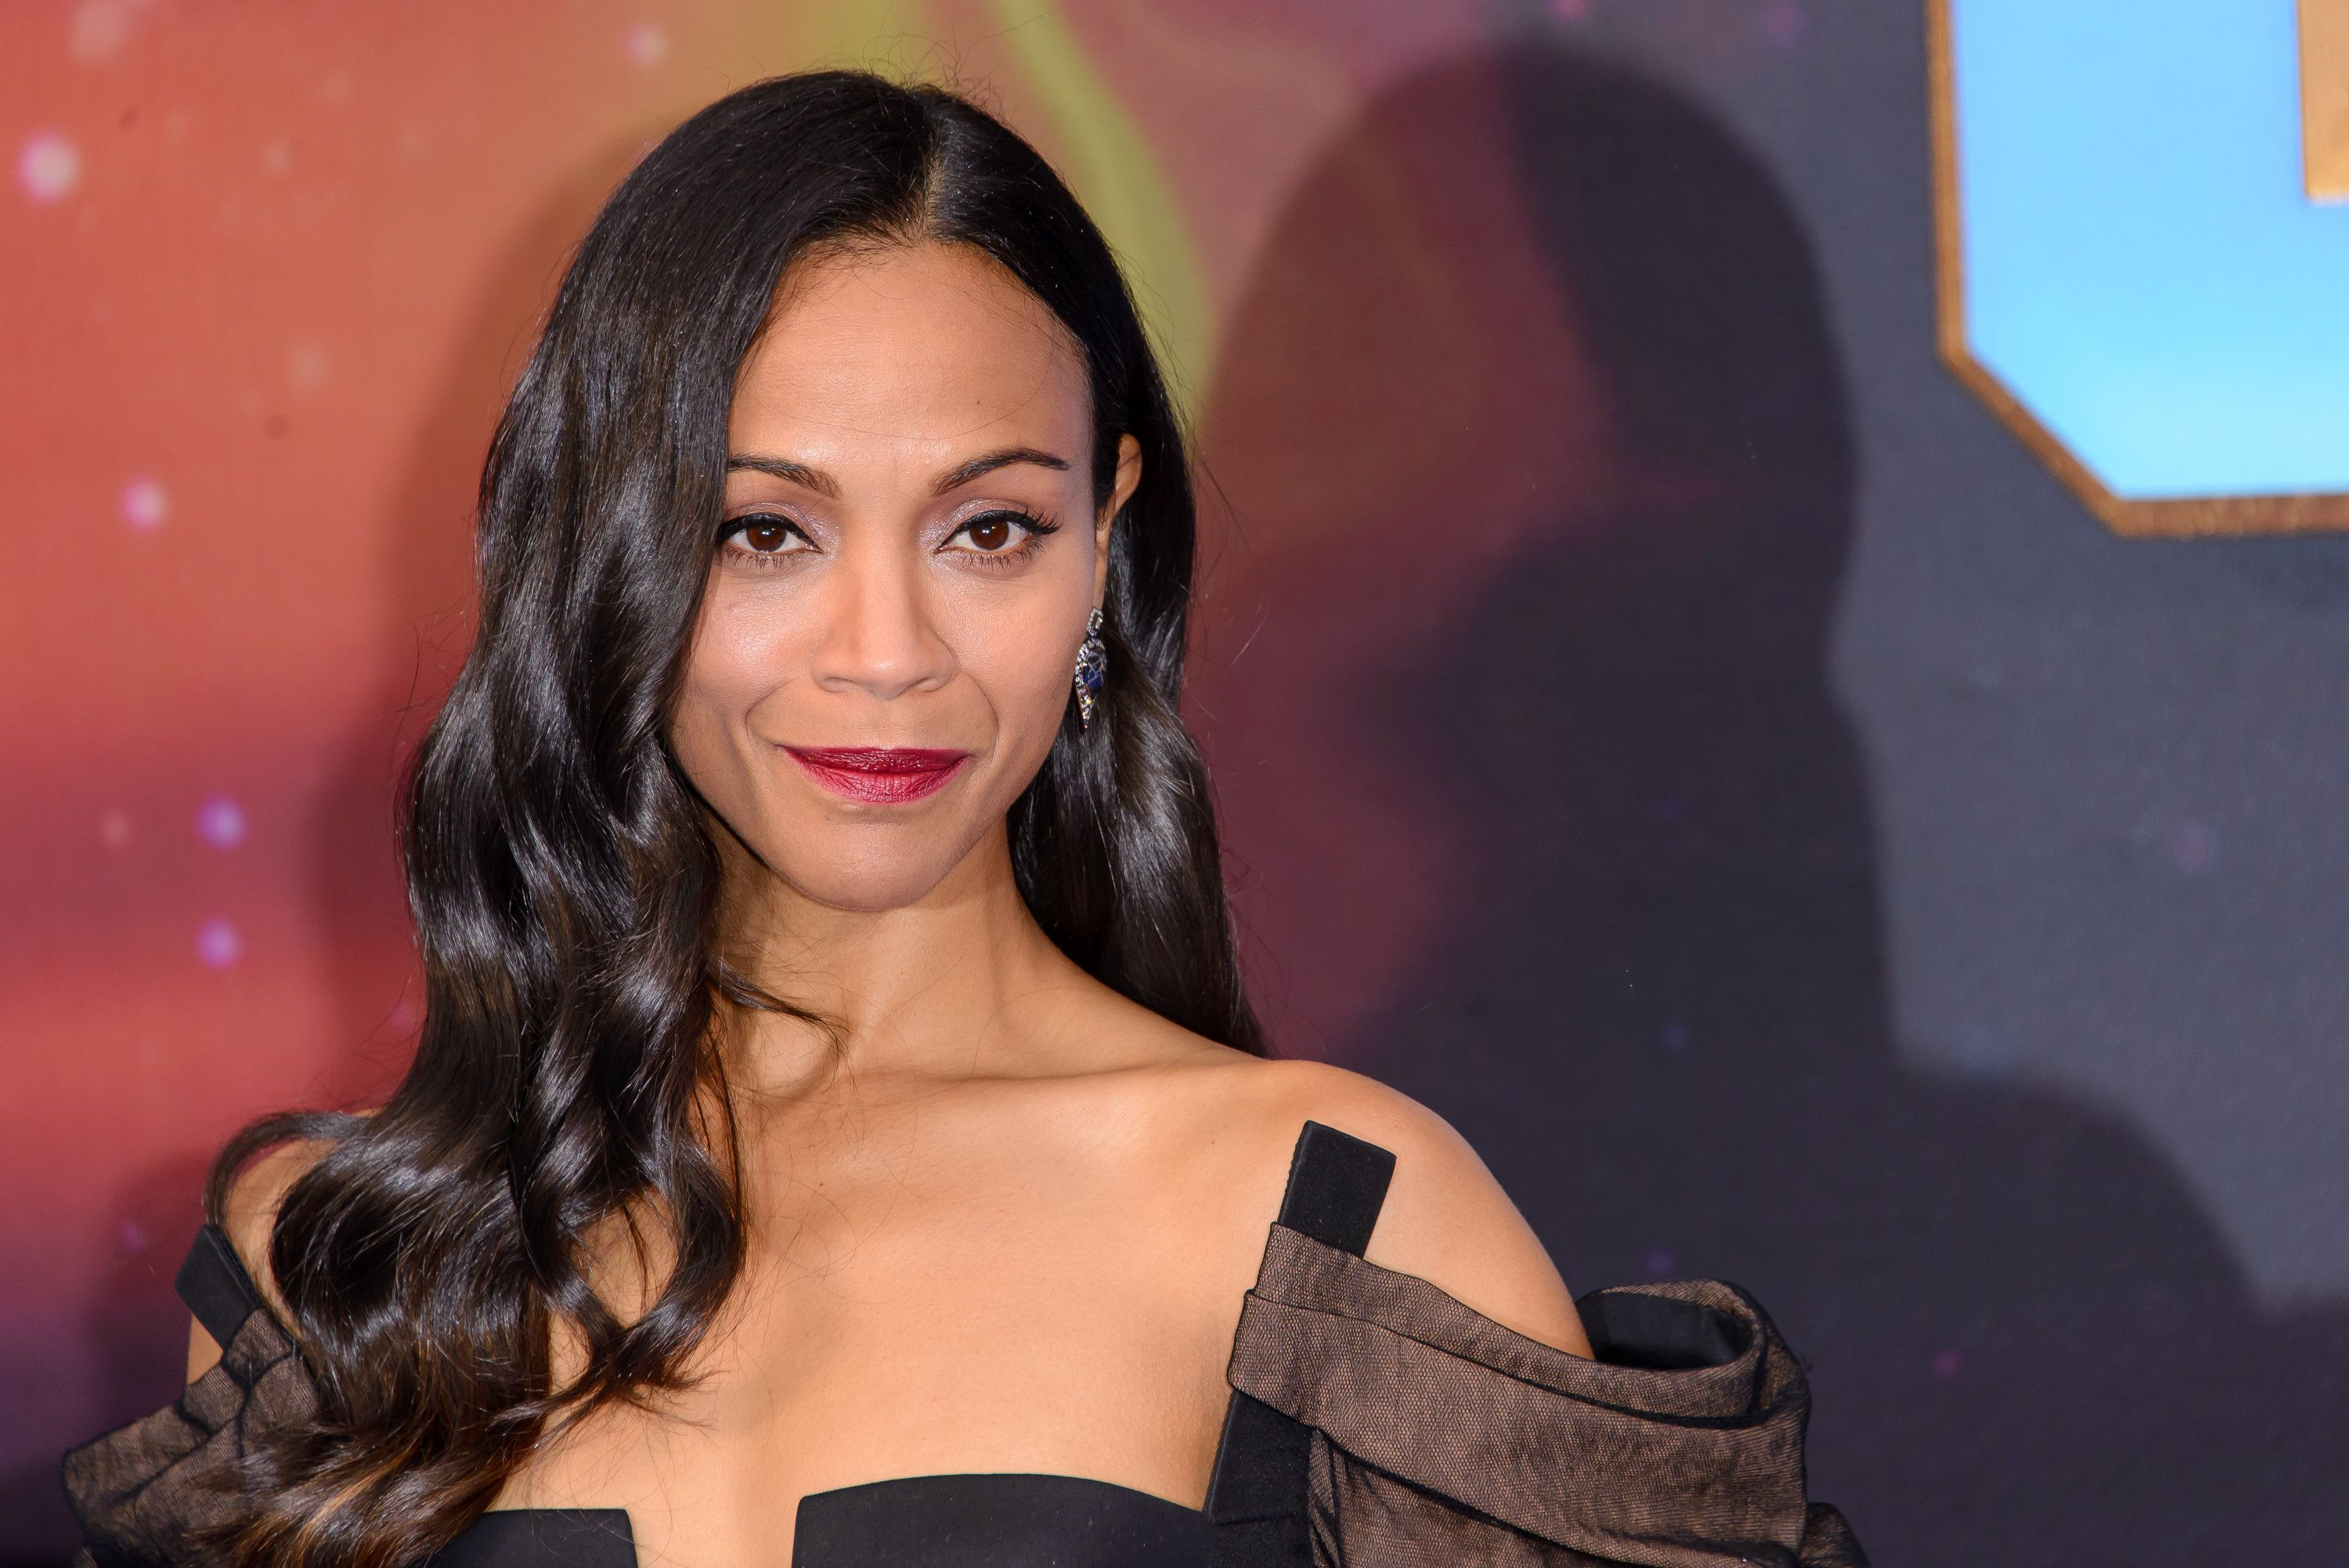 Zoe Saldana has no problem shopping in the girls' section for her sons' clothes.